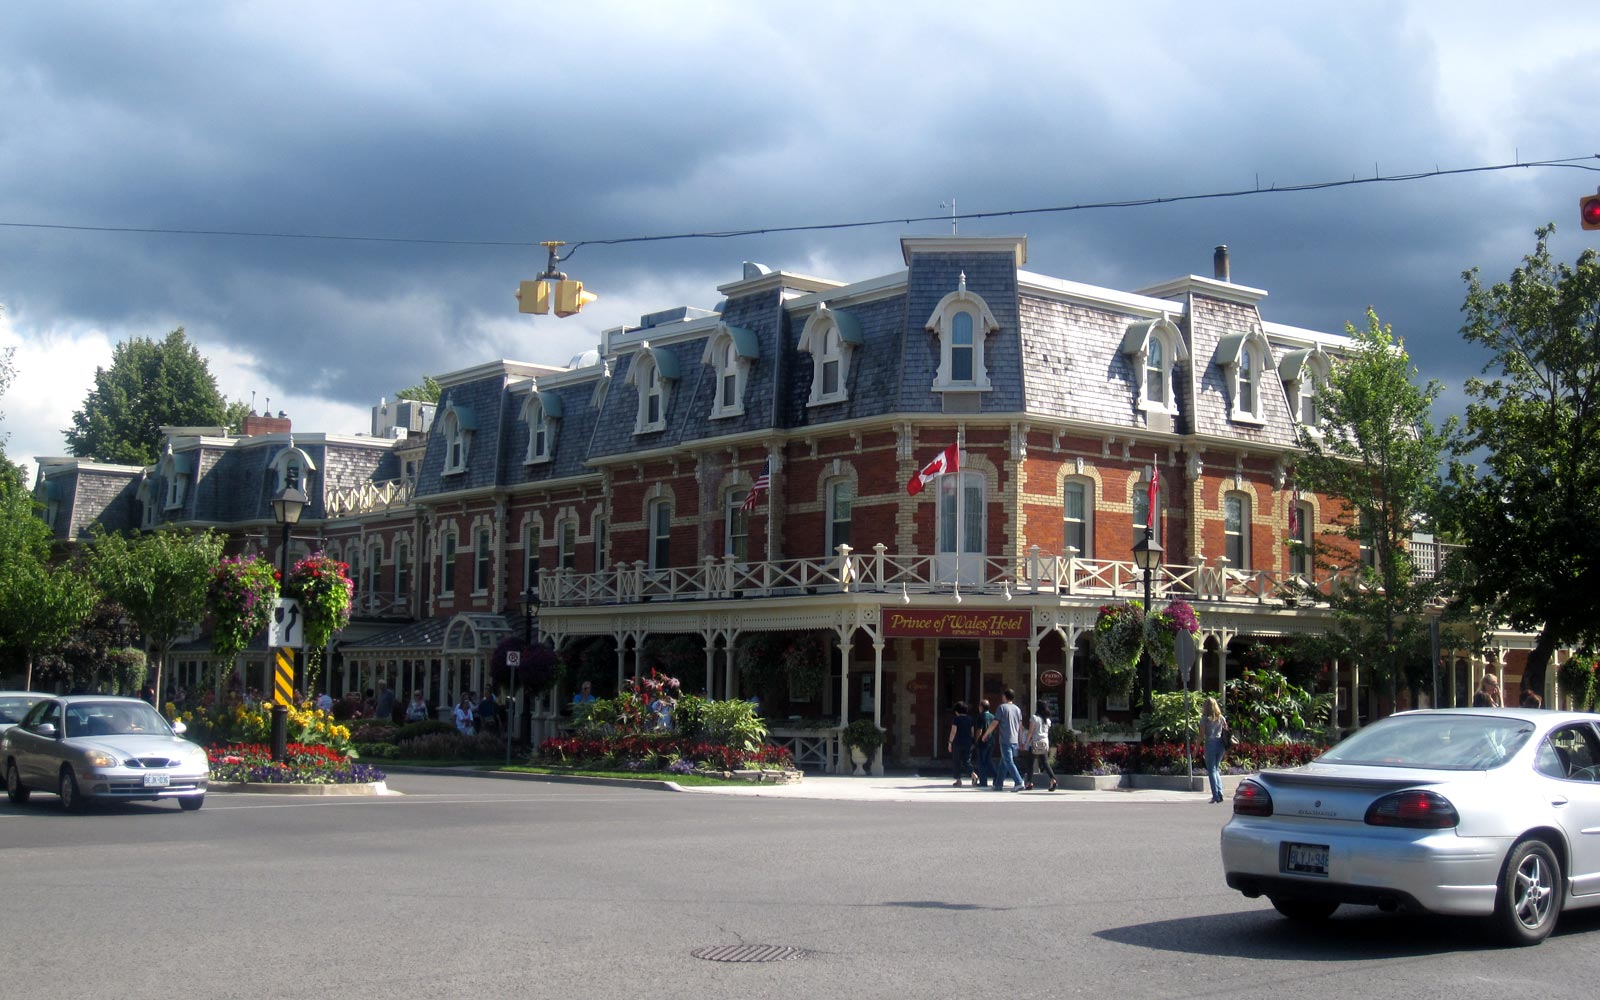 Niagara-on-the-Lake: Downtown